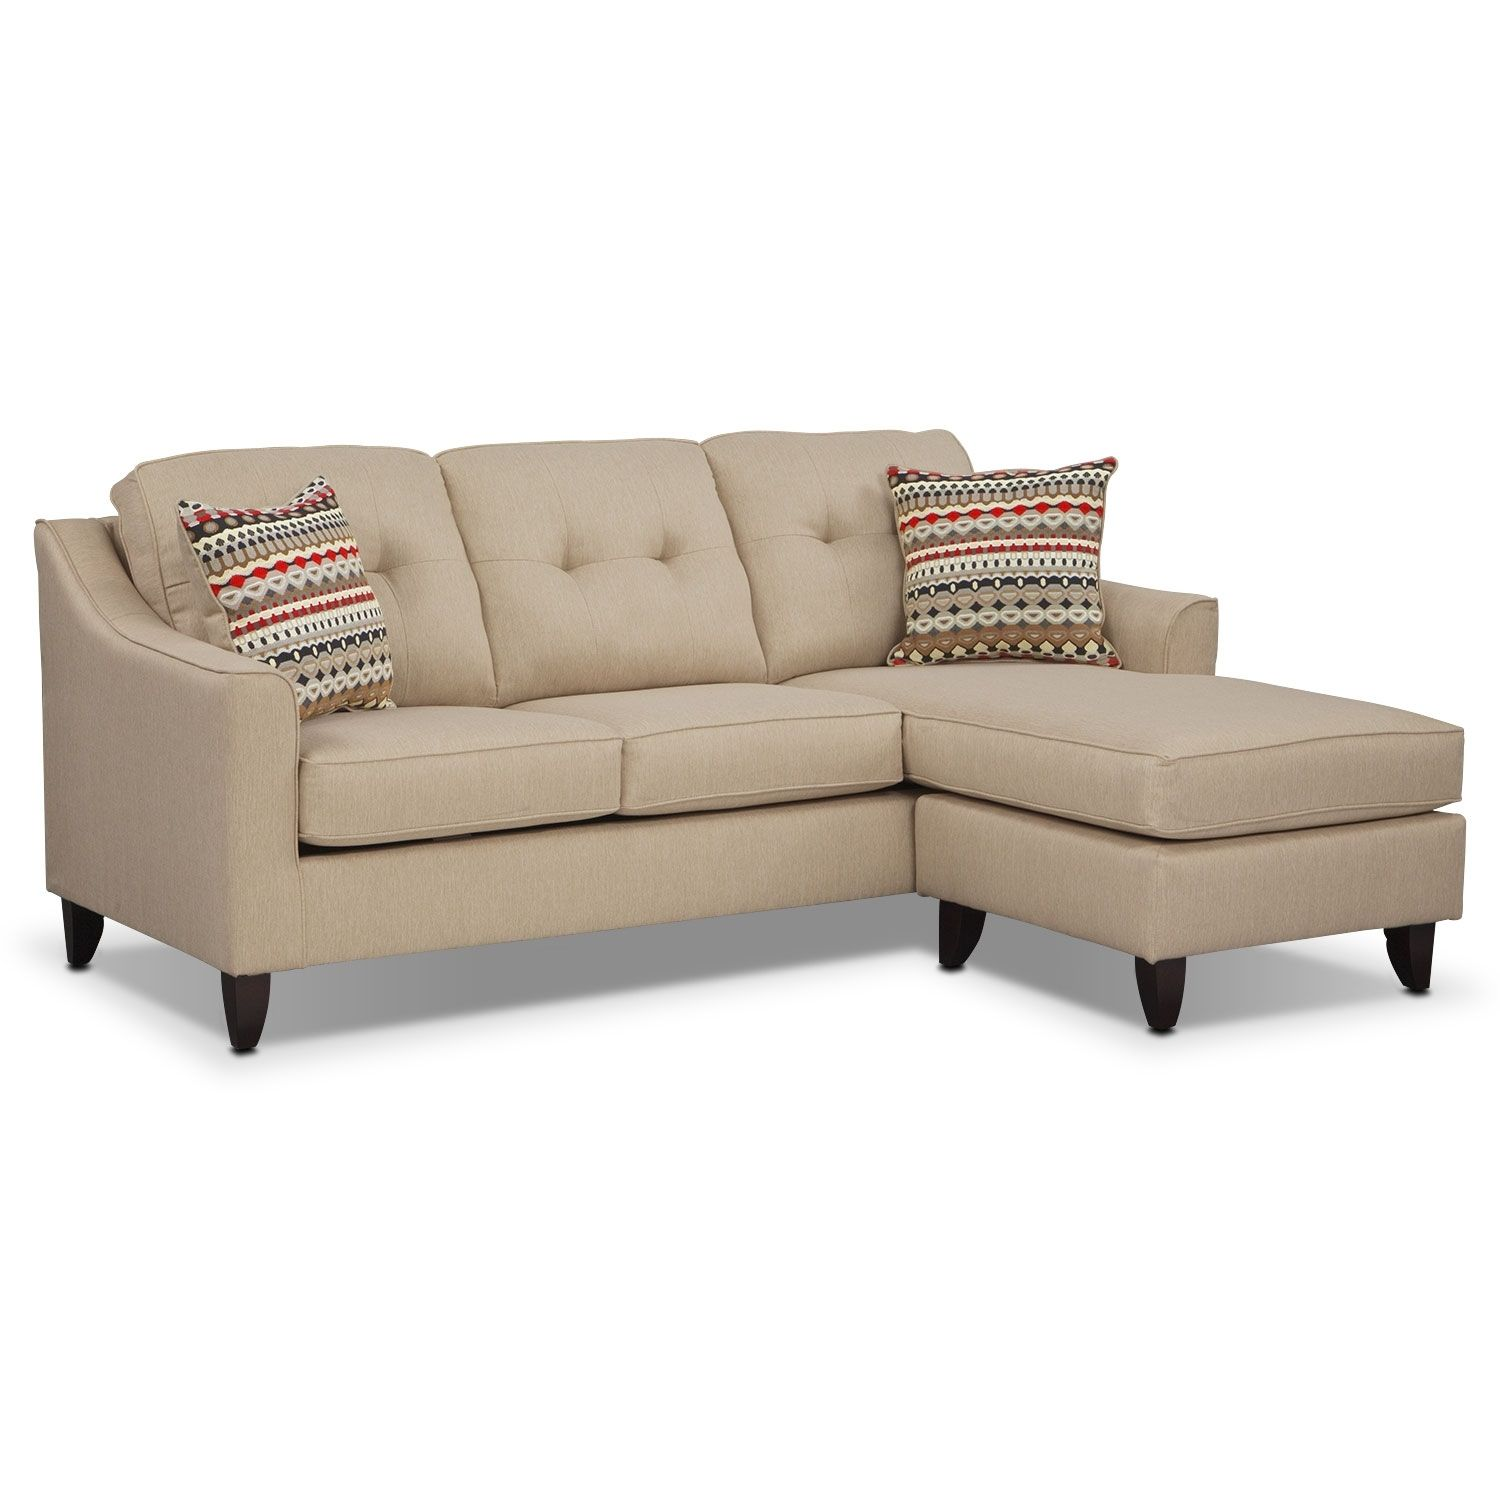 Awesome Sofas And Couches , Good Sofas And Couches 16 For Your Sofas And  Couches Set With Sofas And Couches , Http://sofascouch.com/sofas And Couchu2026